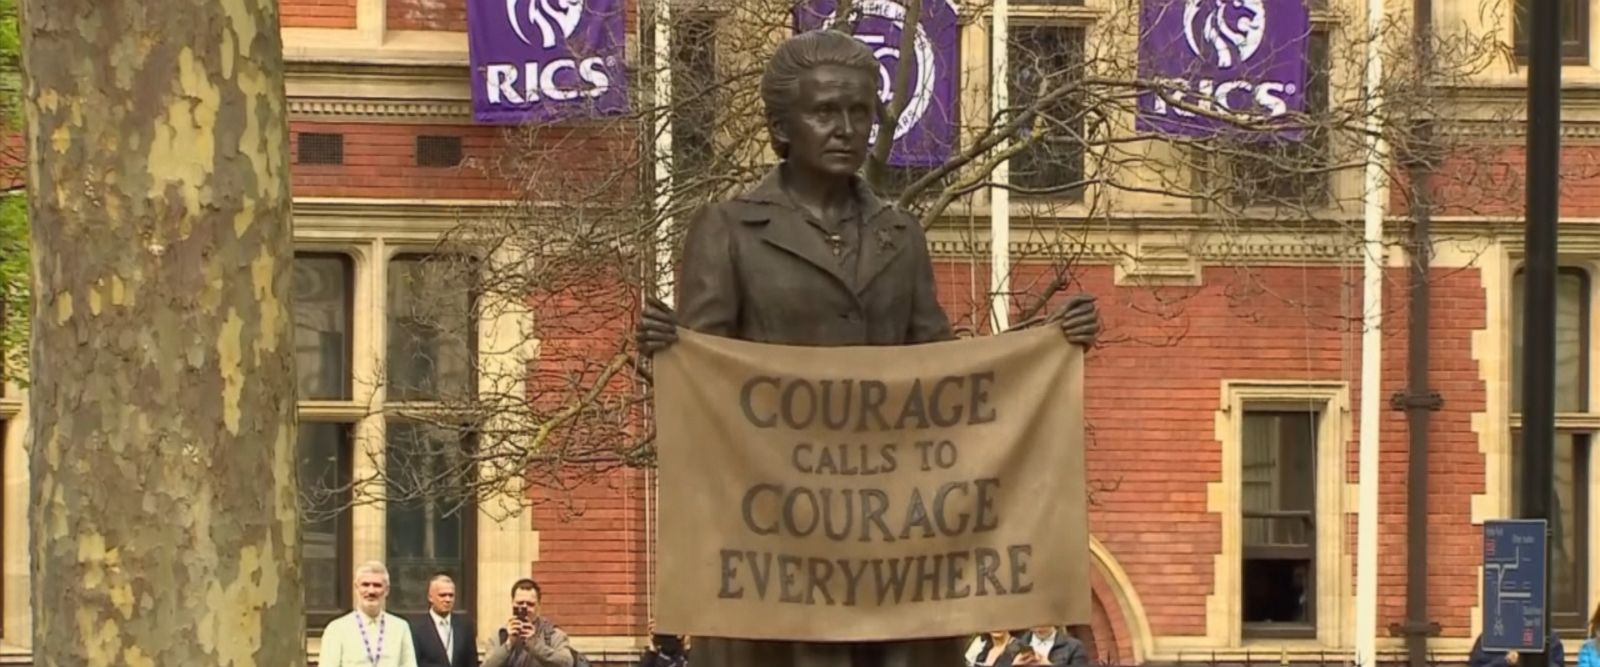 VIDEO: Millicent Fawcett, a leading suffragist who played a key role in securing women older than 30 the right to vote in 1918, was commemorated outside the British Parliament.